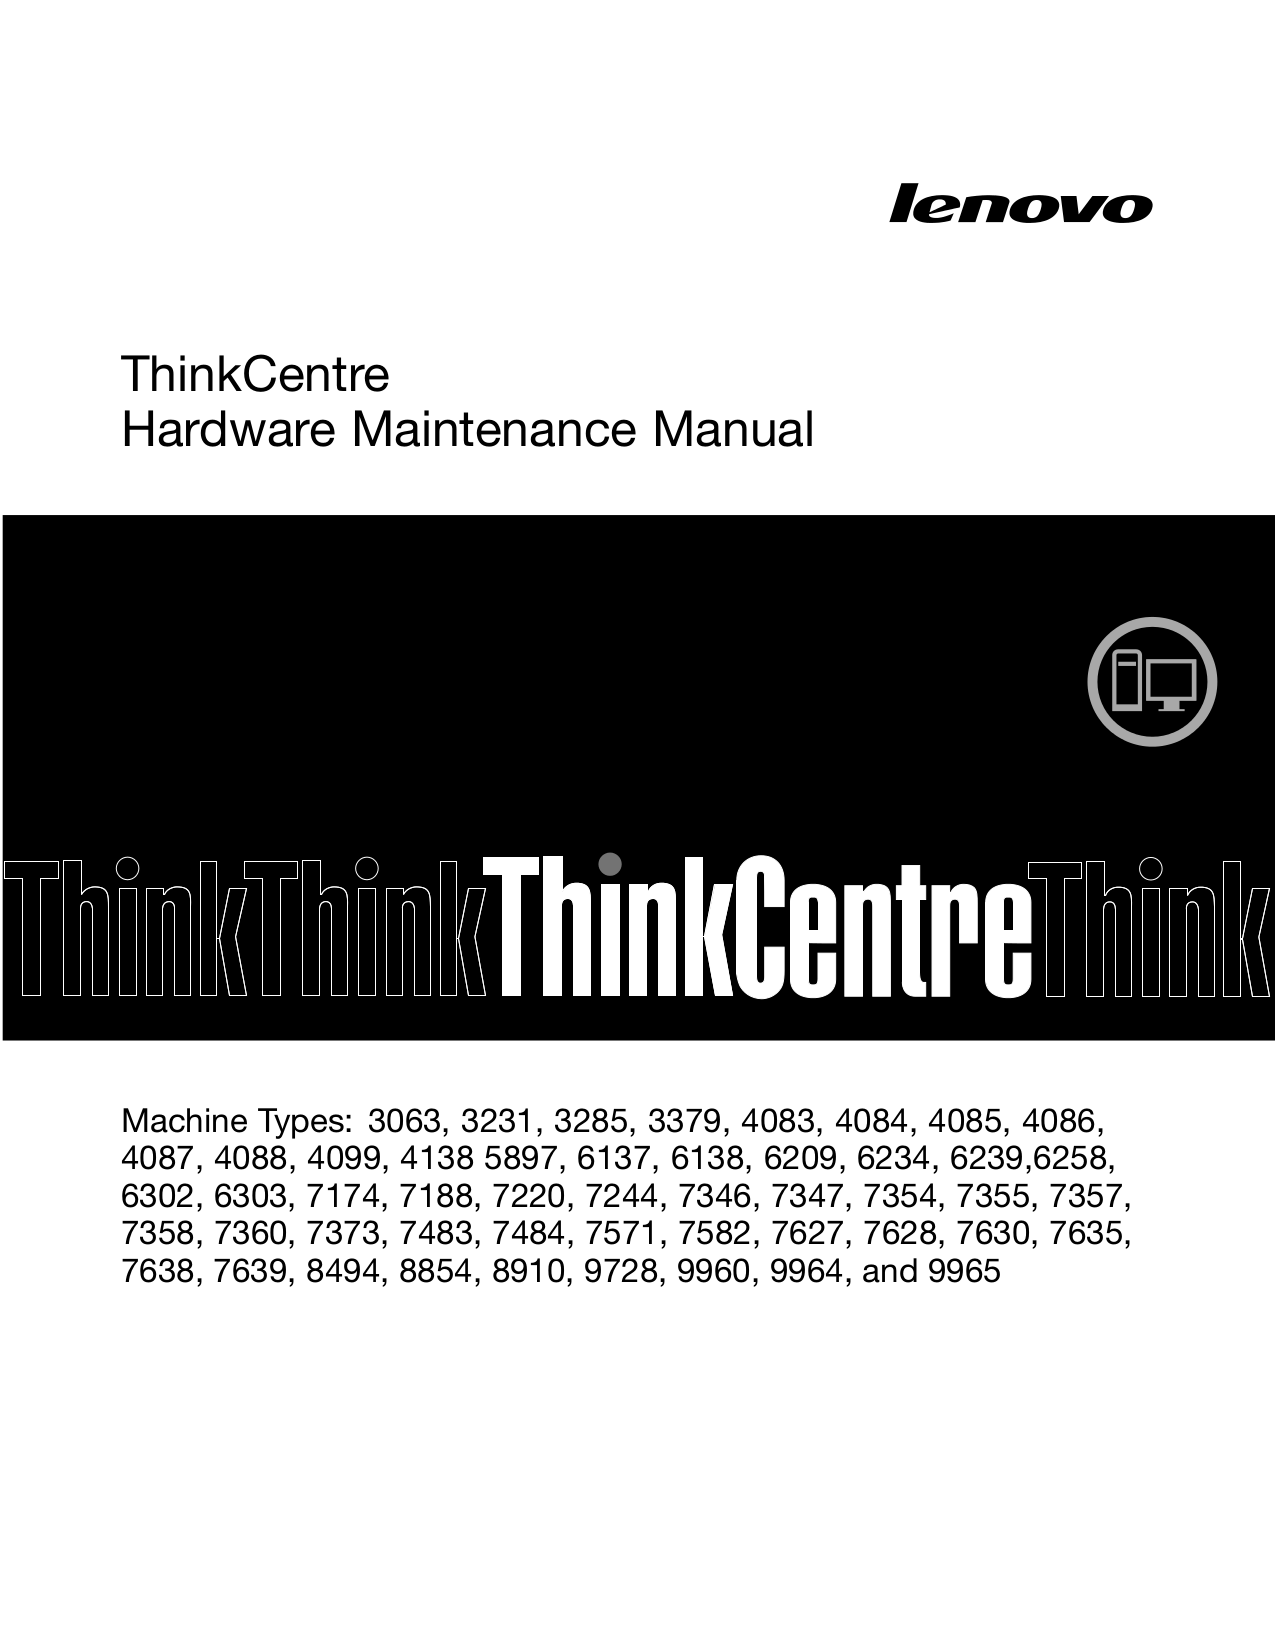 pdf for Lenovo Desktop ThinkCentre M90p 3282 manual